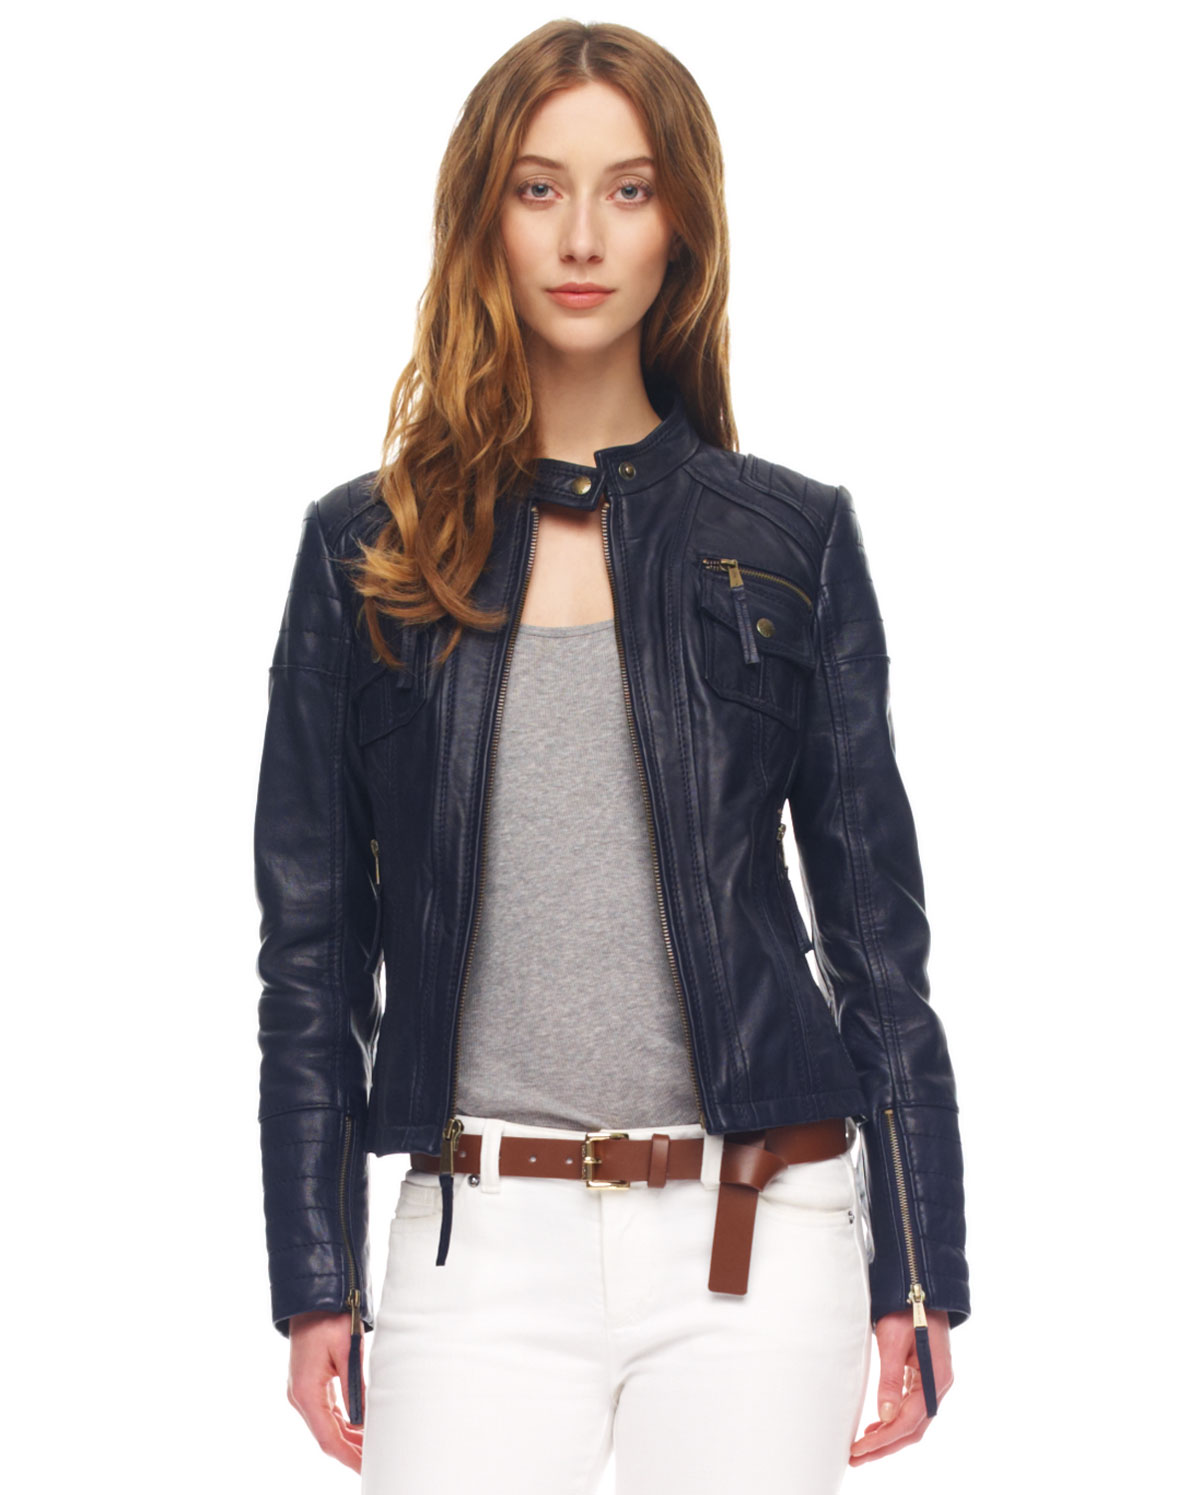 michael kors leather motorcycle jacket in blue navy lyst. Black Bedroom Furniture Sets. Home Design Ideas